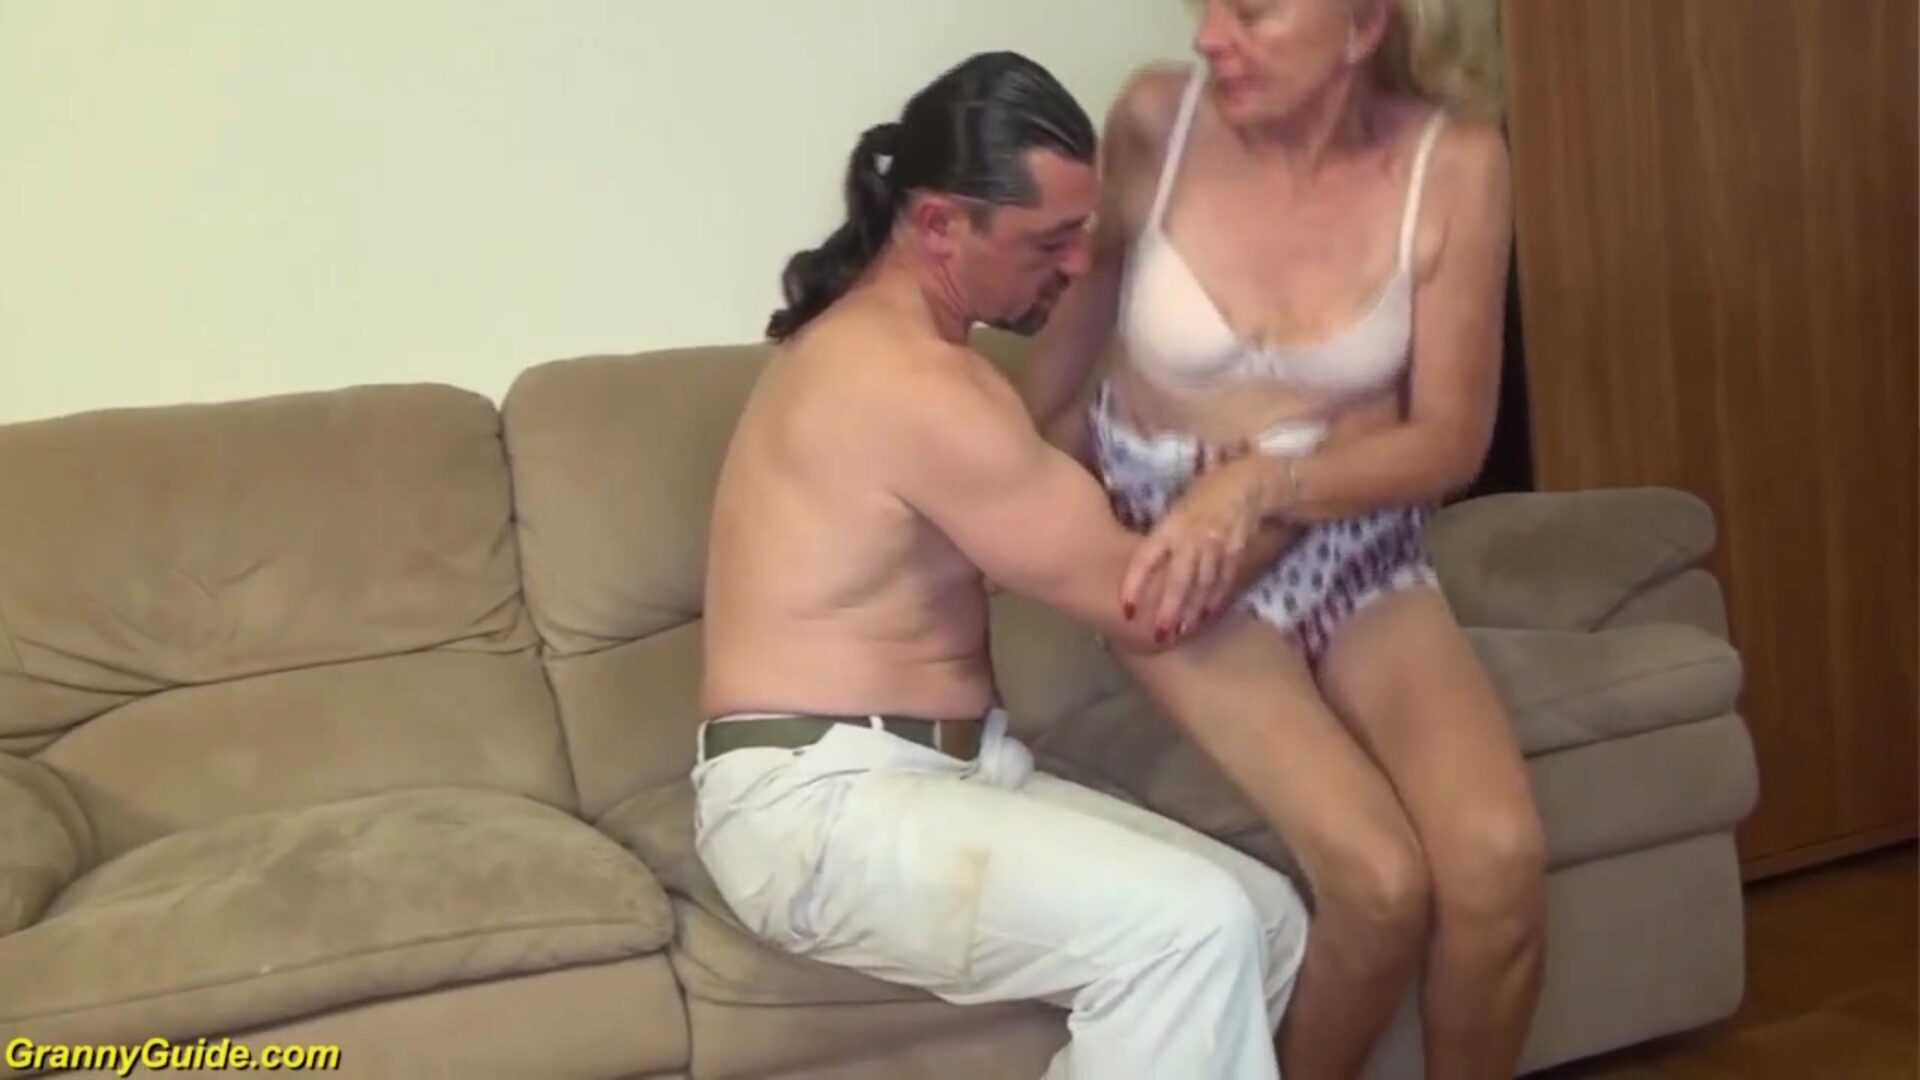 81 years elderly mamma gangbanged by sonny bizarre excited 81 years aged slim grannie with saggy wobblers gets rough large schlong fucked by her son-in-law